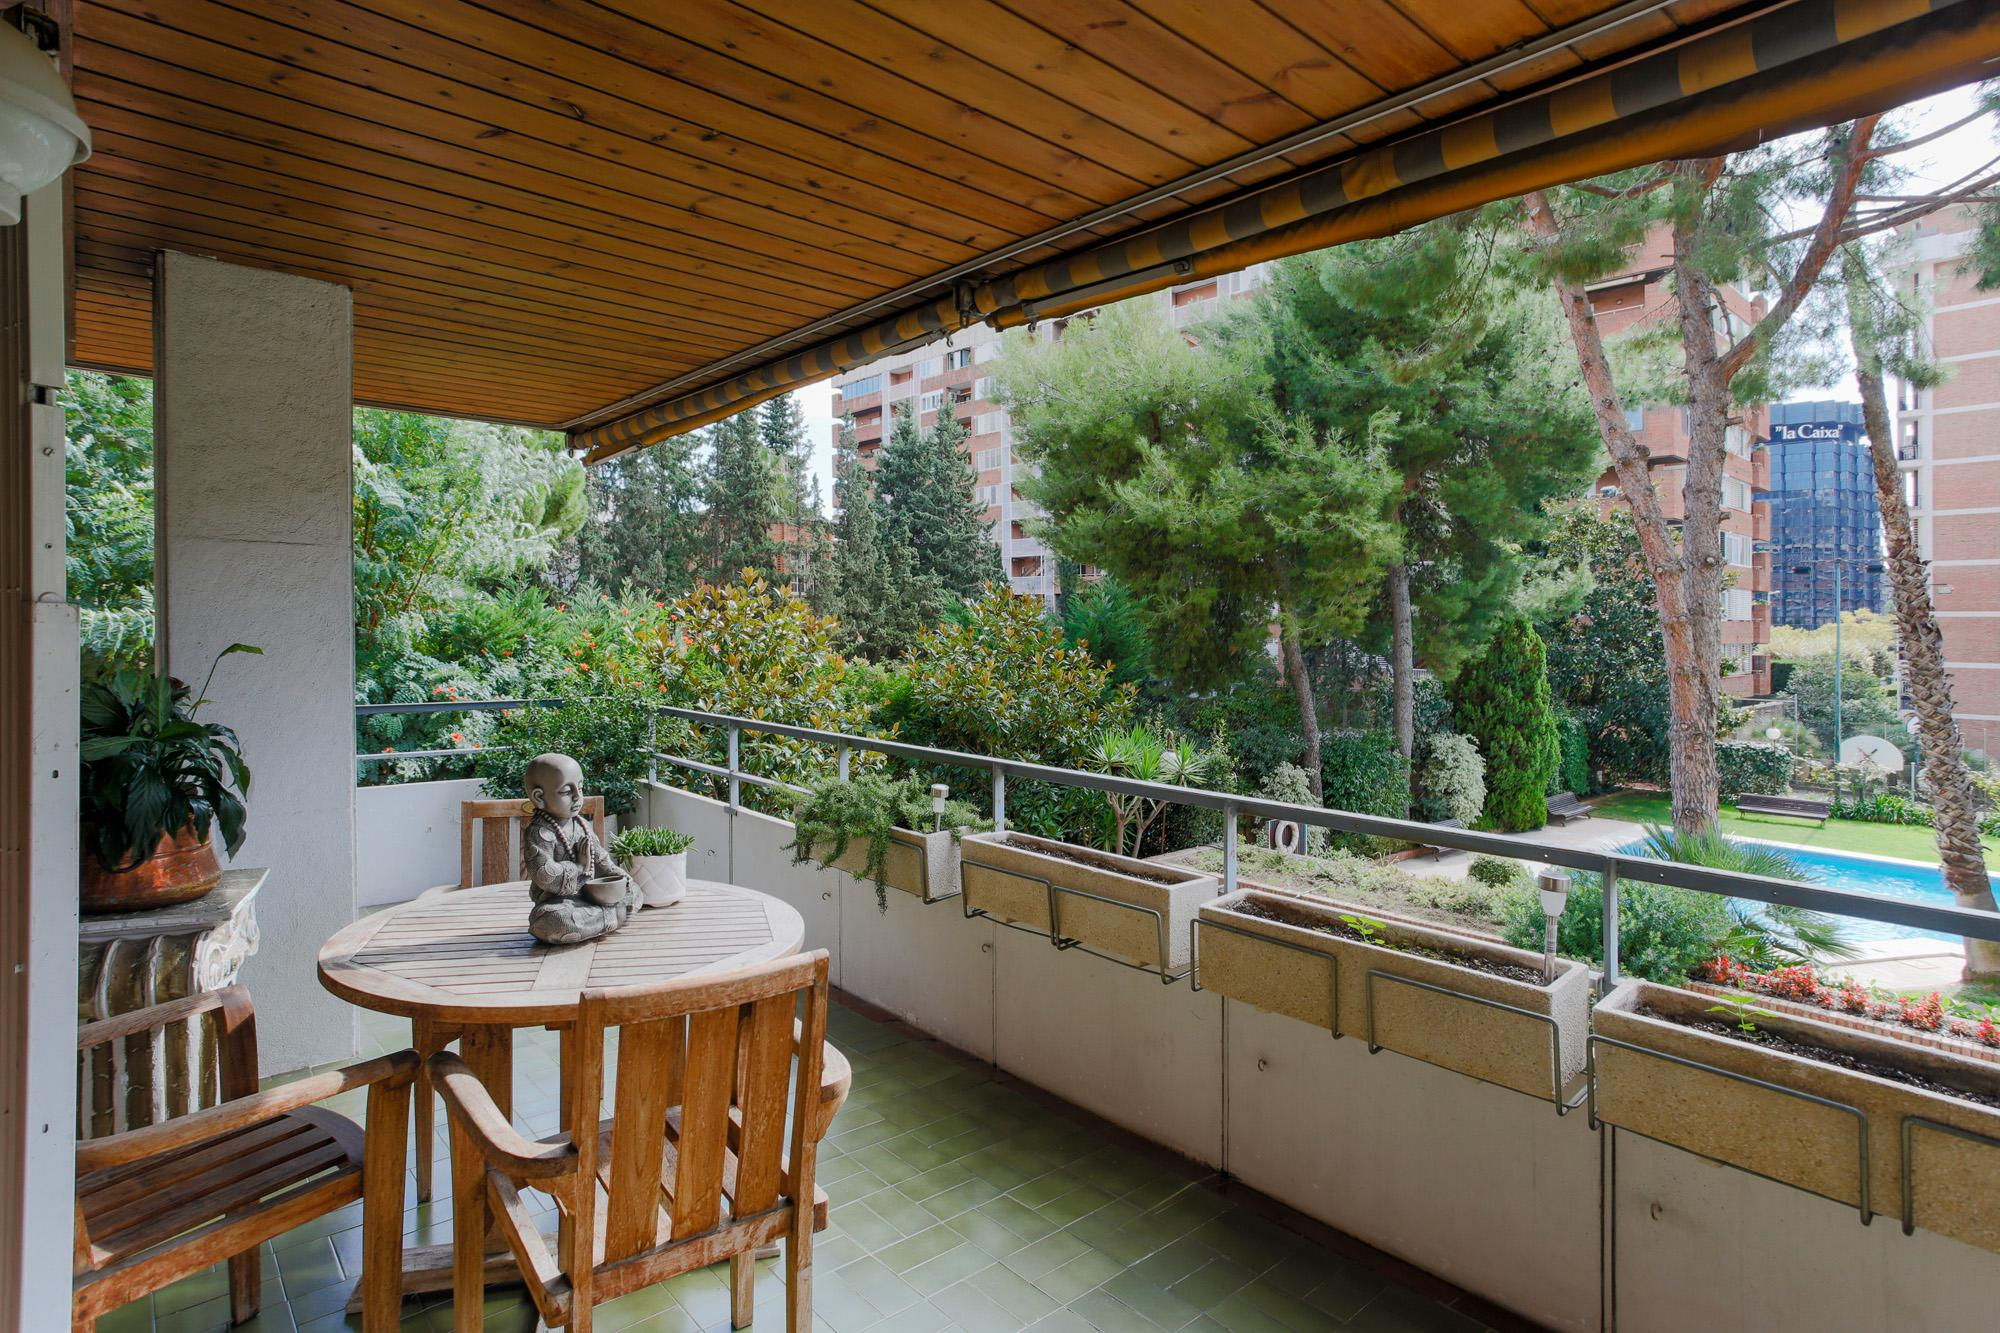 232863 Apartment for sale in Les Corts, Pedralbes 1